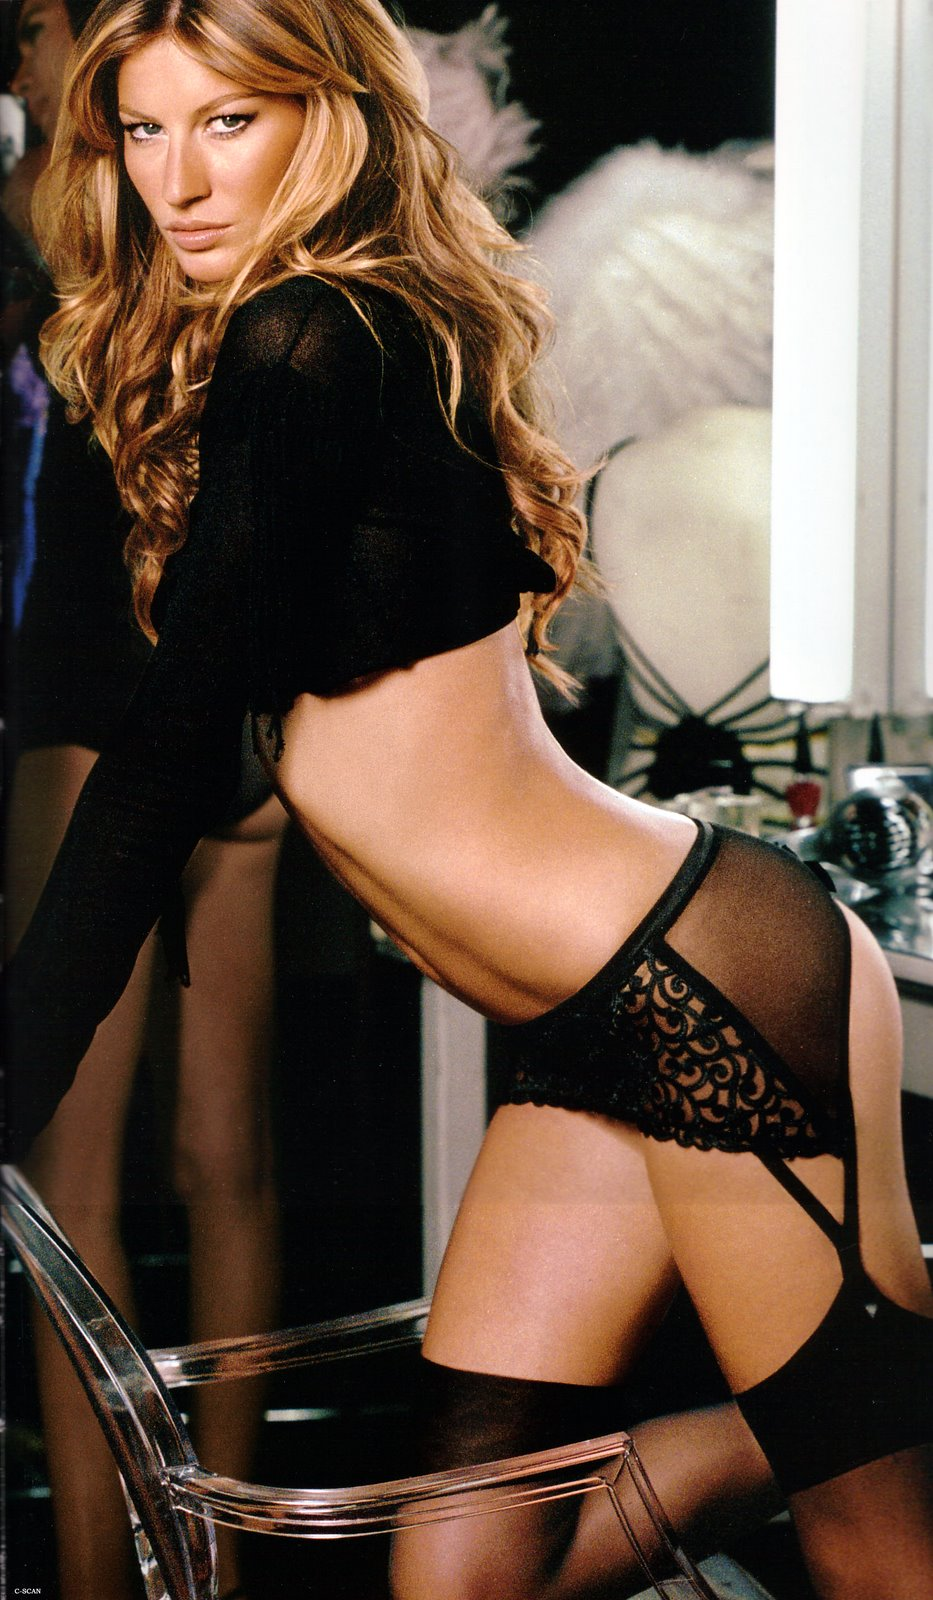 Gisele Bundchen in Victorias Secret Lingerie